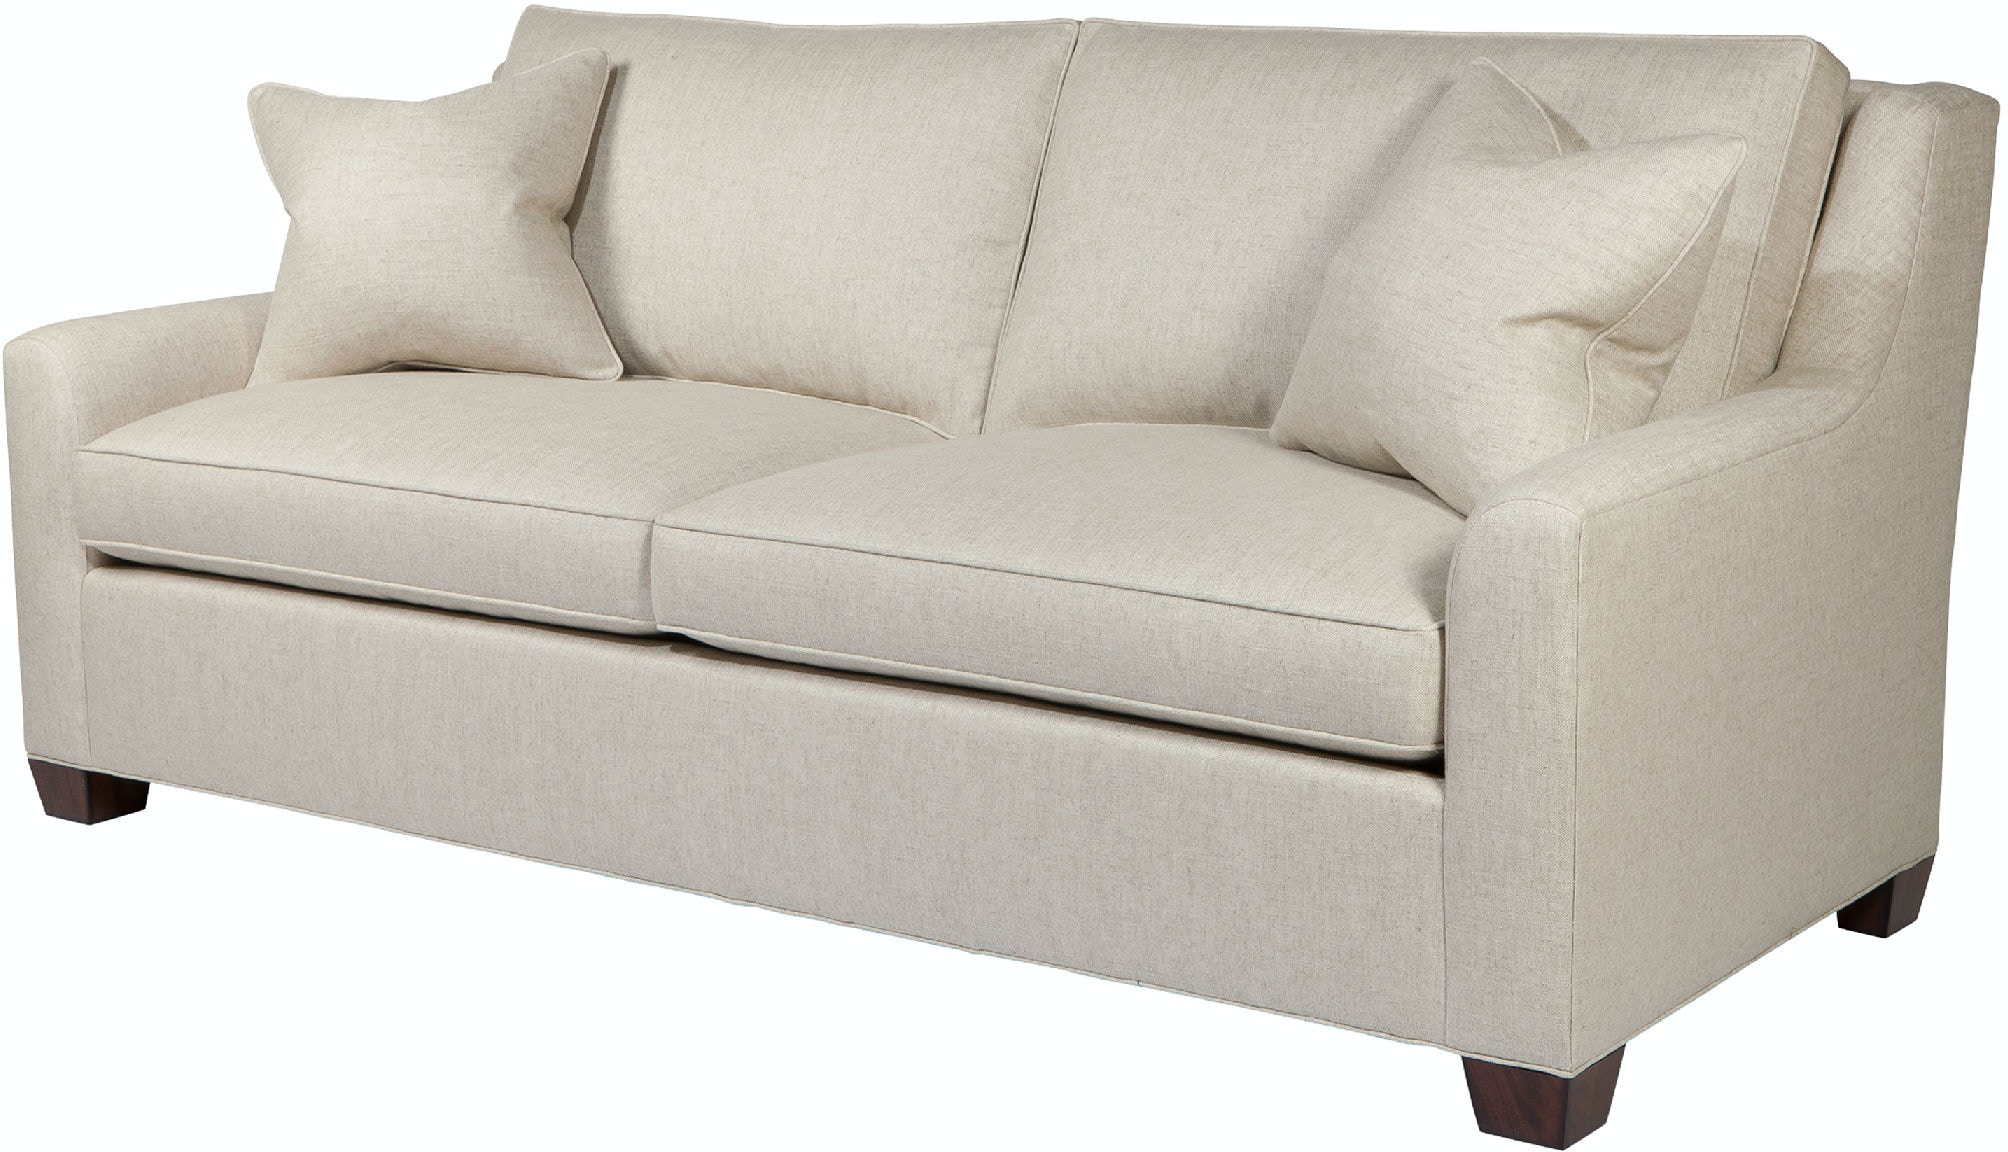 Theodore Alexander Living Room Lucie Sofa 615 20 Douds